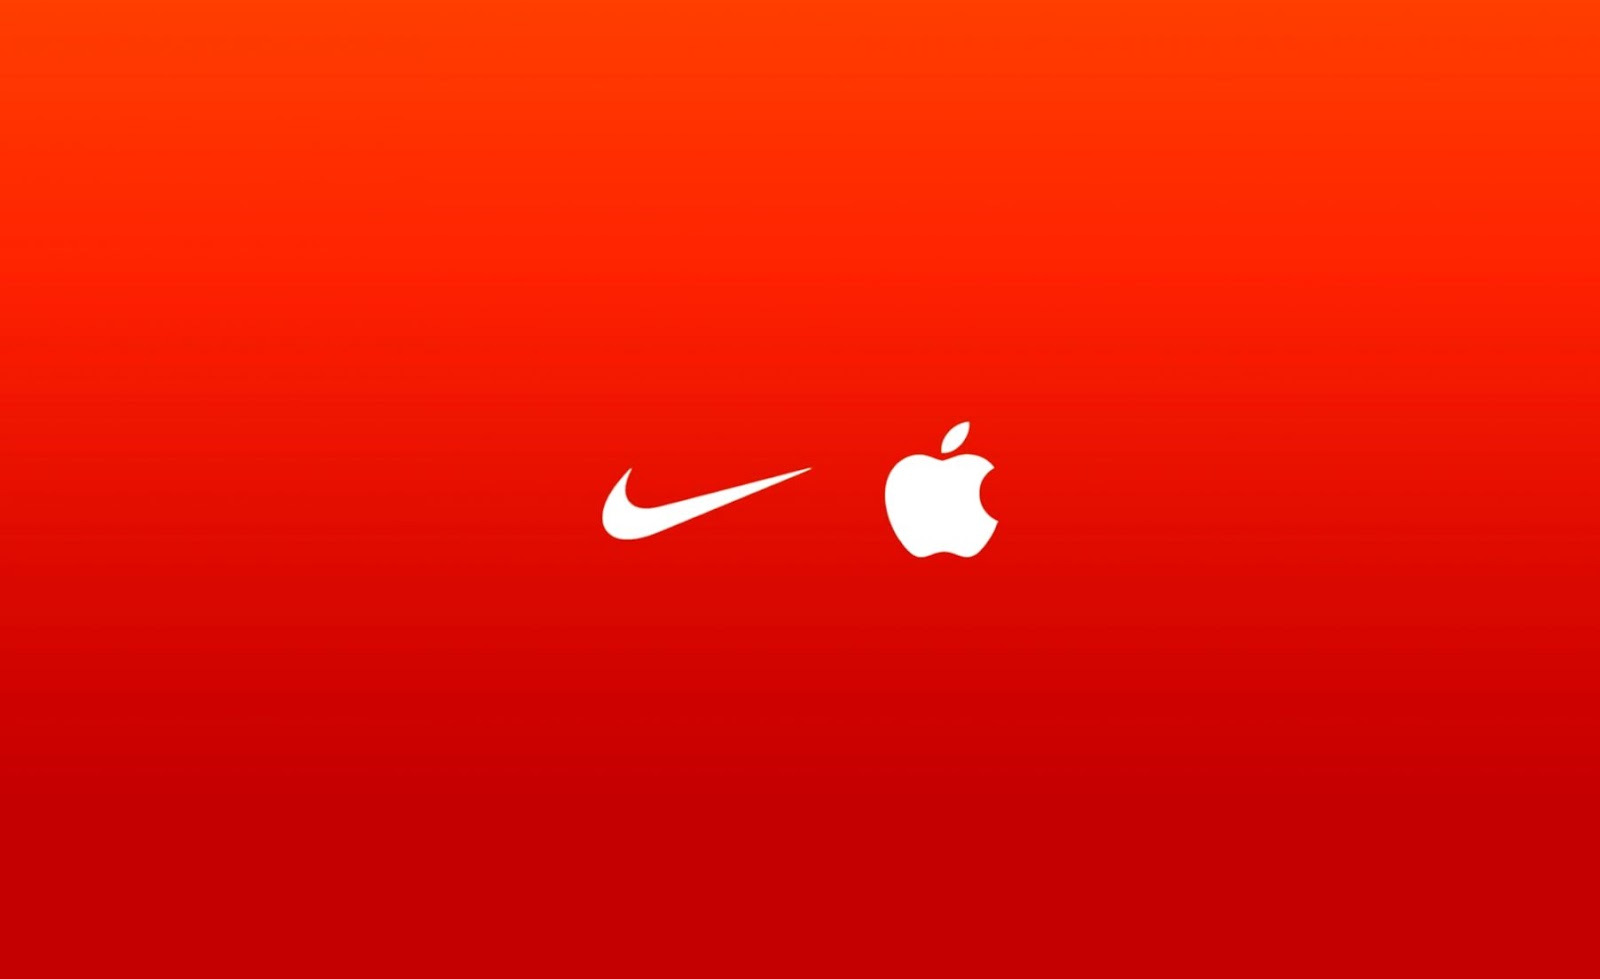 Nike Sport Iphone Wallpaper: Nike Iphone 4 Wallpaper